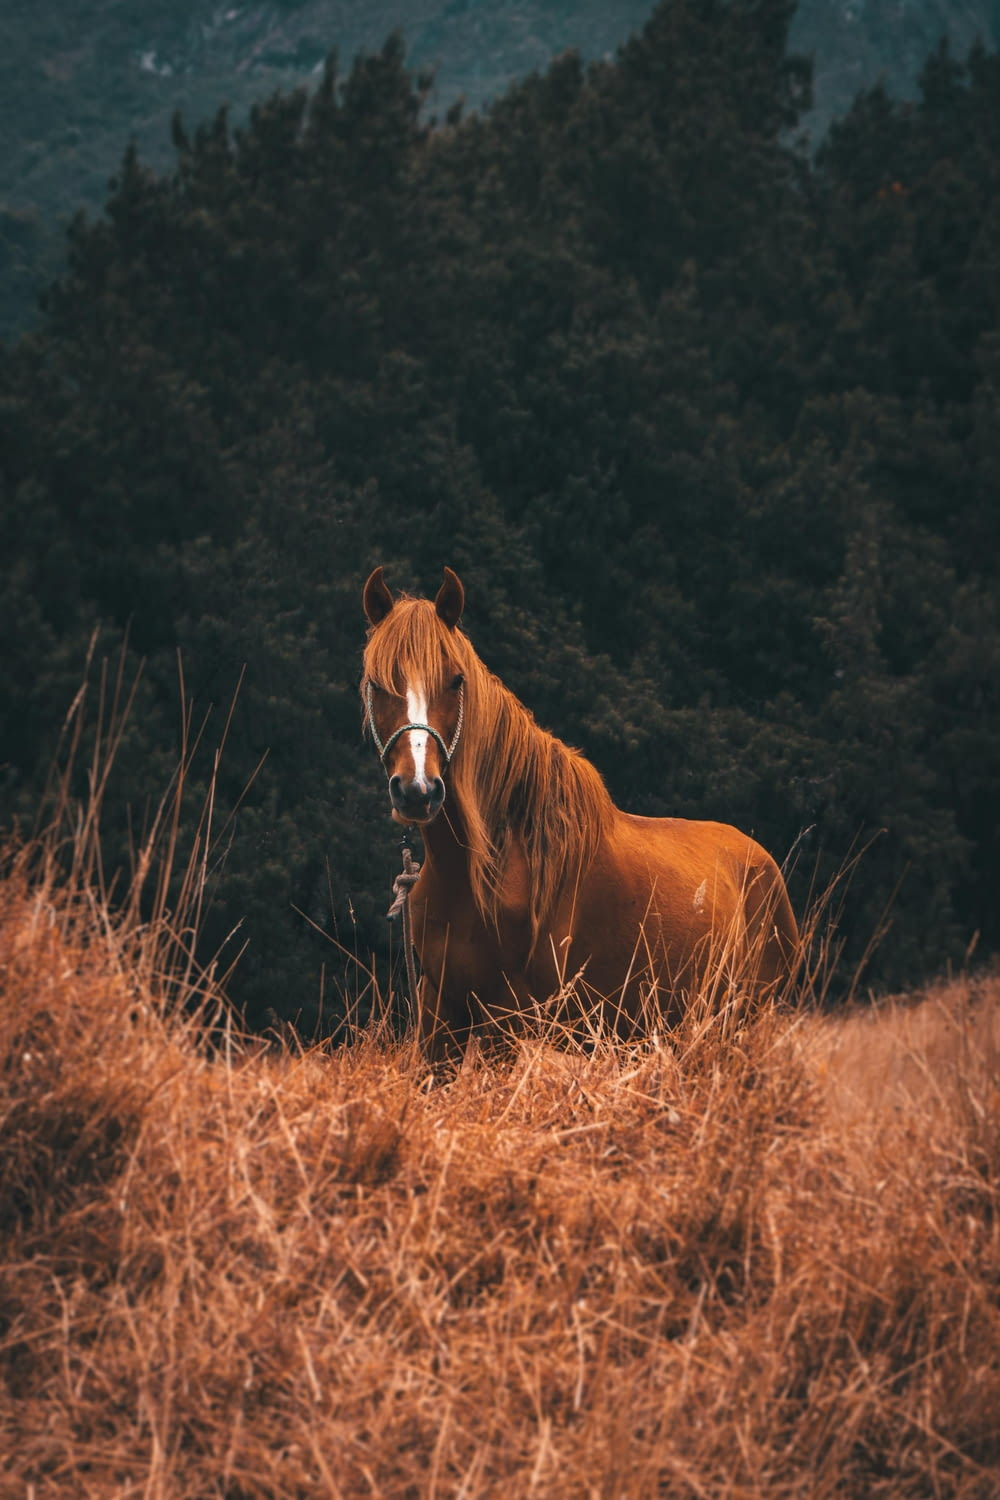 brown horse on brown grass field during daytime